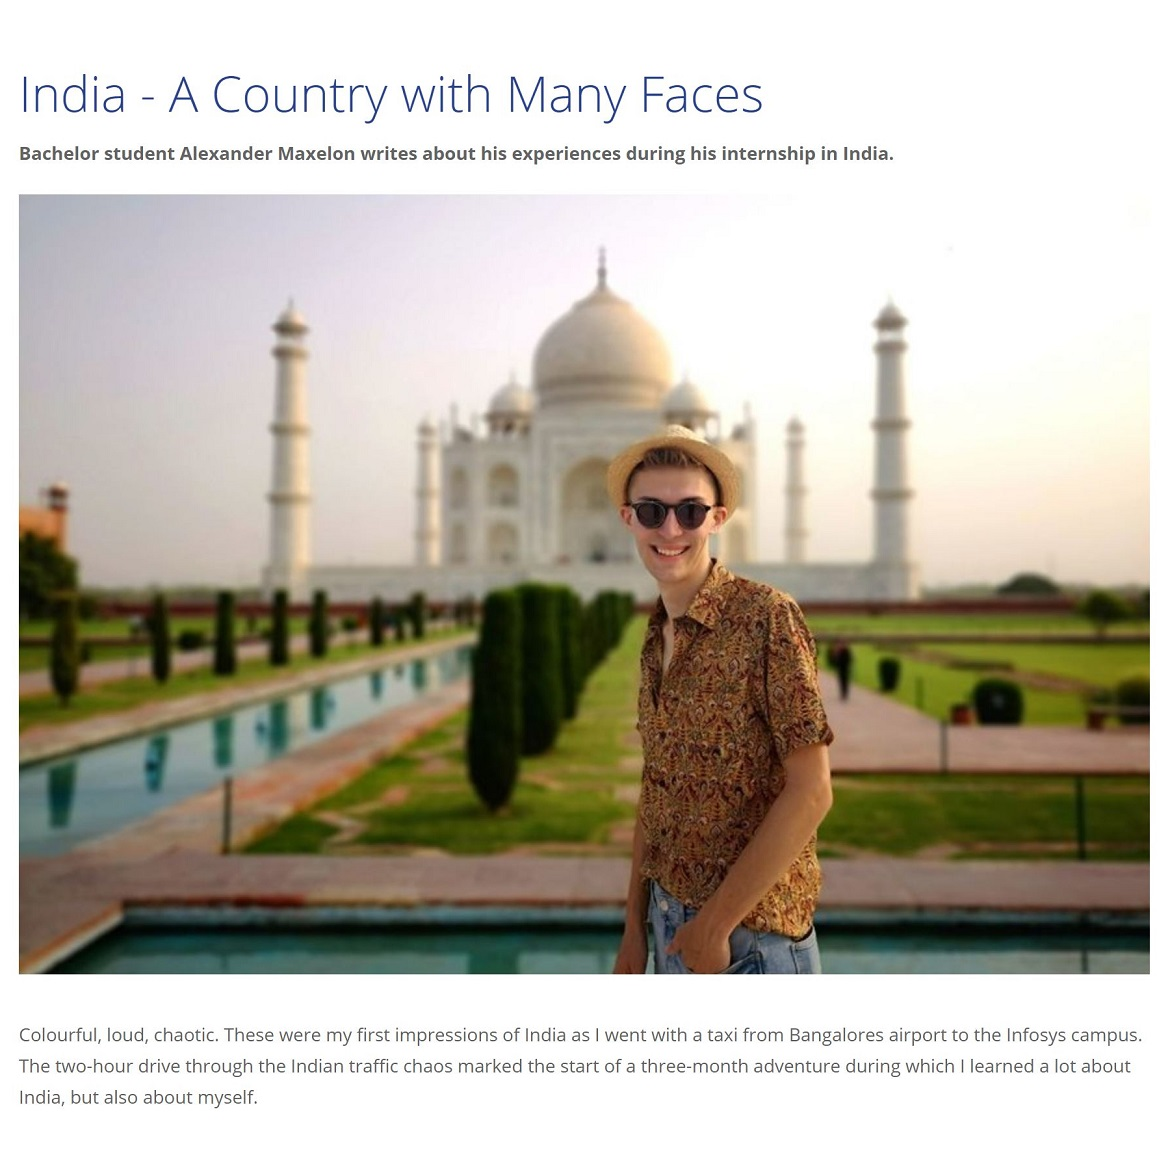 India A Country with Many Faces